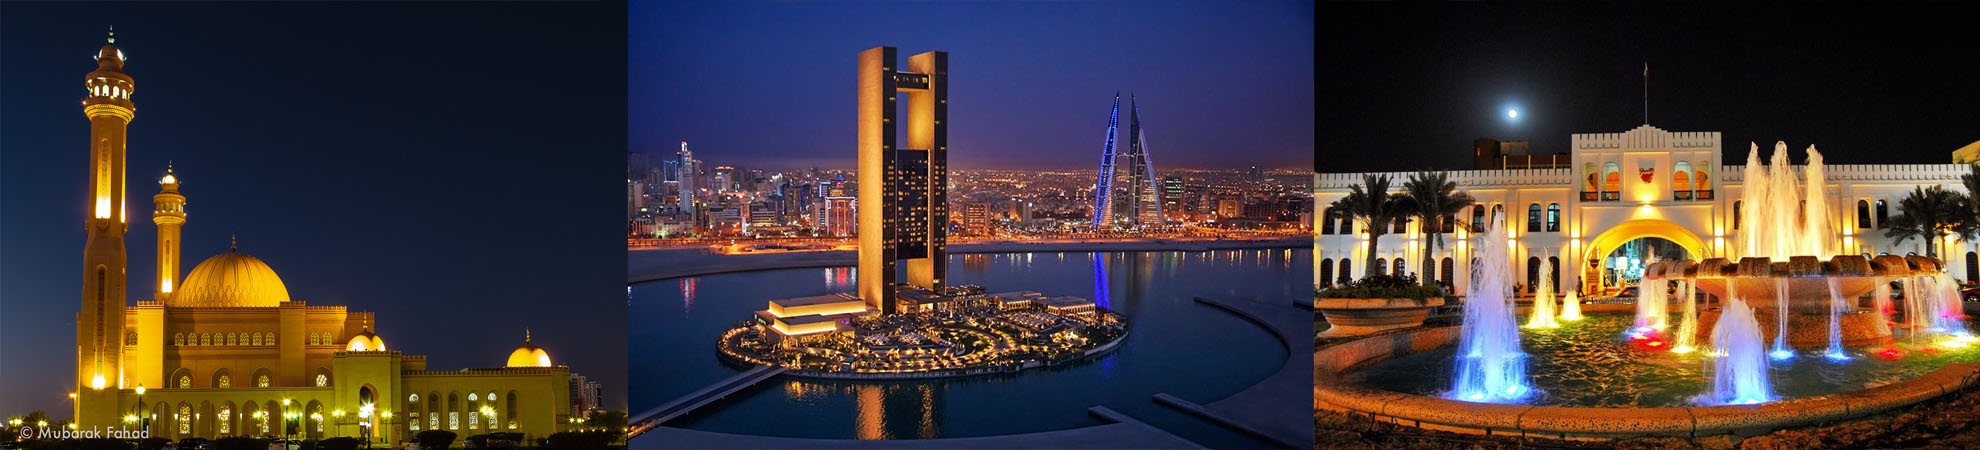 "<h2 style=""padding-left: 20px;margin-top:15px;color: #FFFFFF;"">Bahrain by Night with Dinner</h2> <p  style=""padding-left: 20px;font-size:16px;margin-top:15px;"">Tour for two hours</p>"